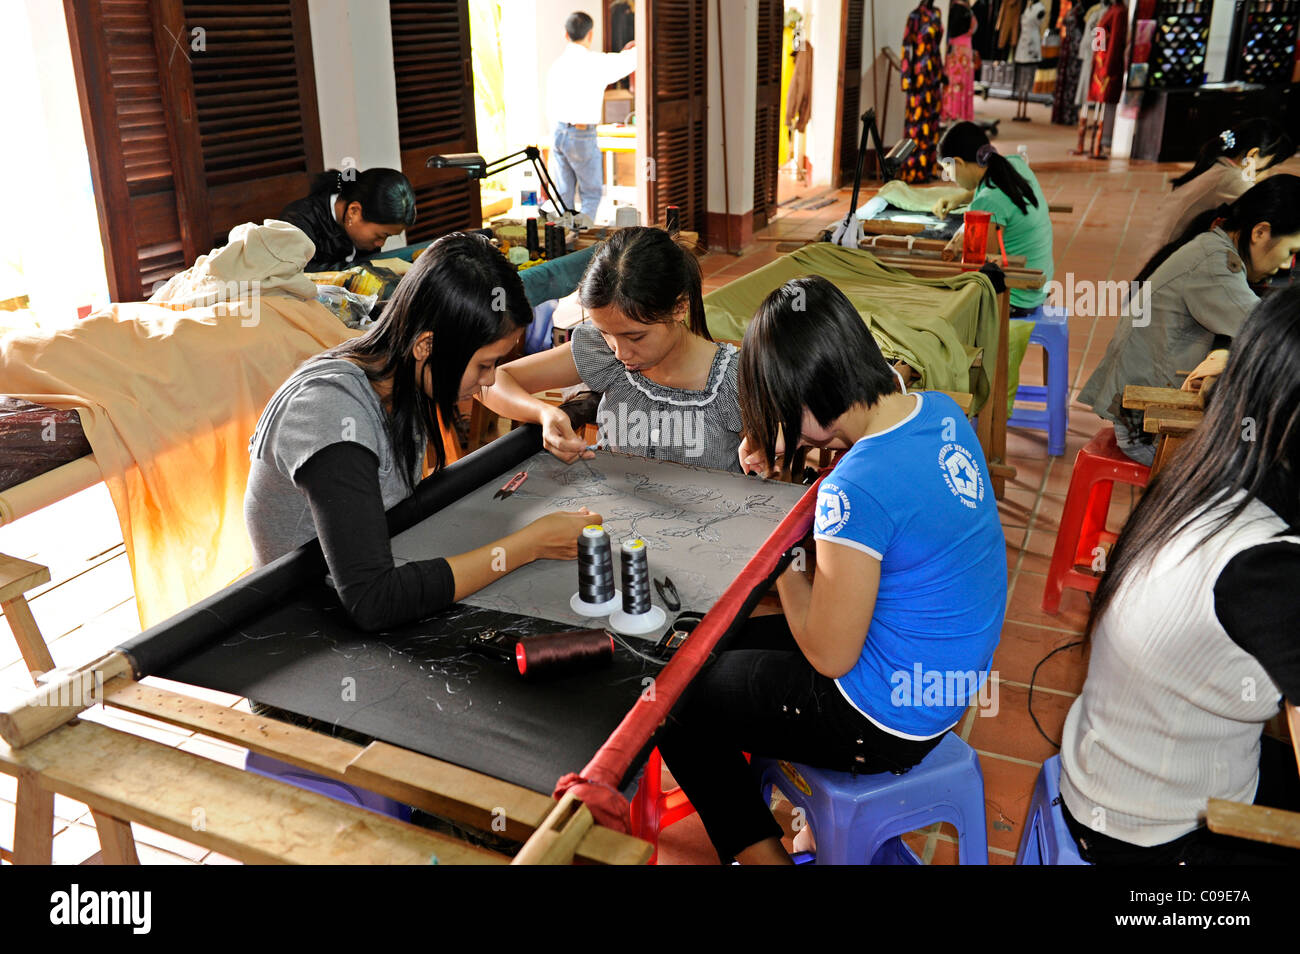 Embroiderers in a textile factory, Hoi An, Quang Nam, Central Vietnam, Vietnam, Southeast Asia, Asia - Stock Image